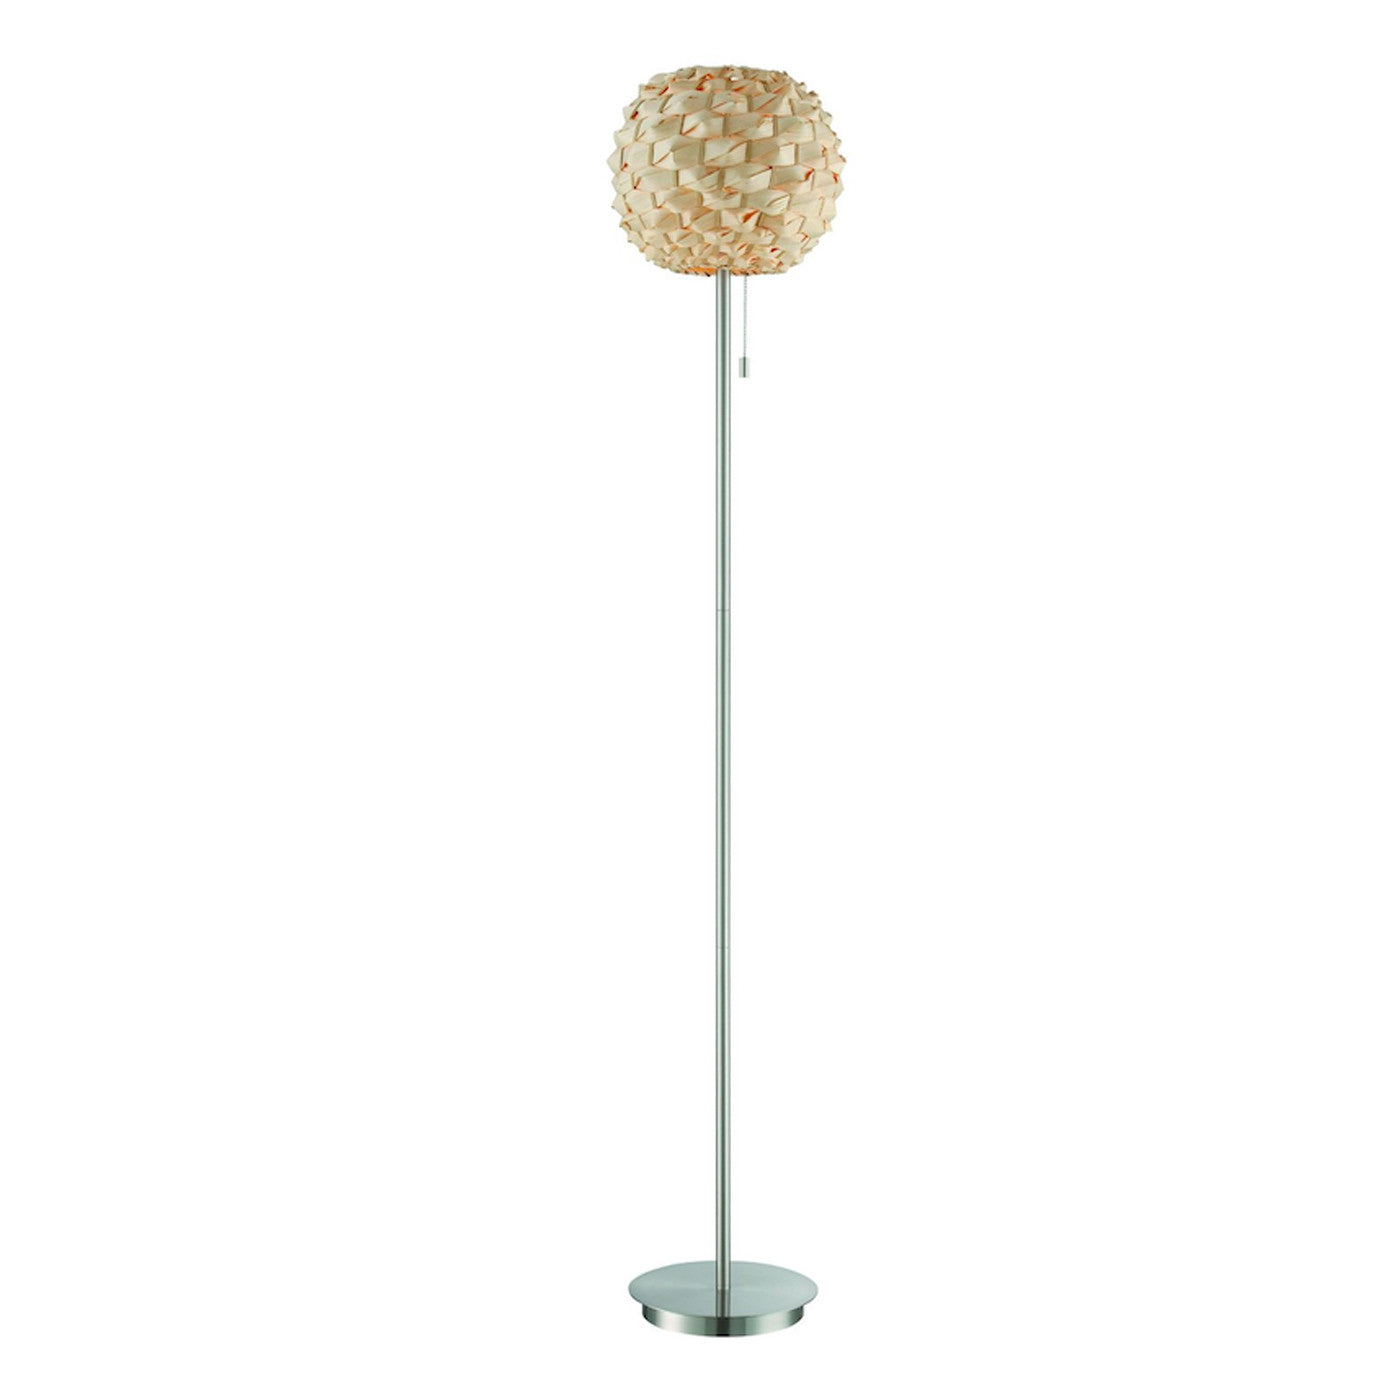 Urchin Rattan Floor Lamp POLISHED STEEL   Apt2B